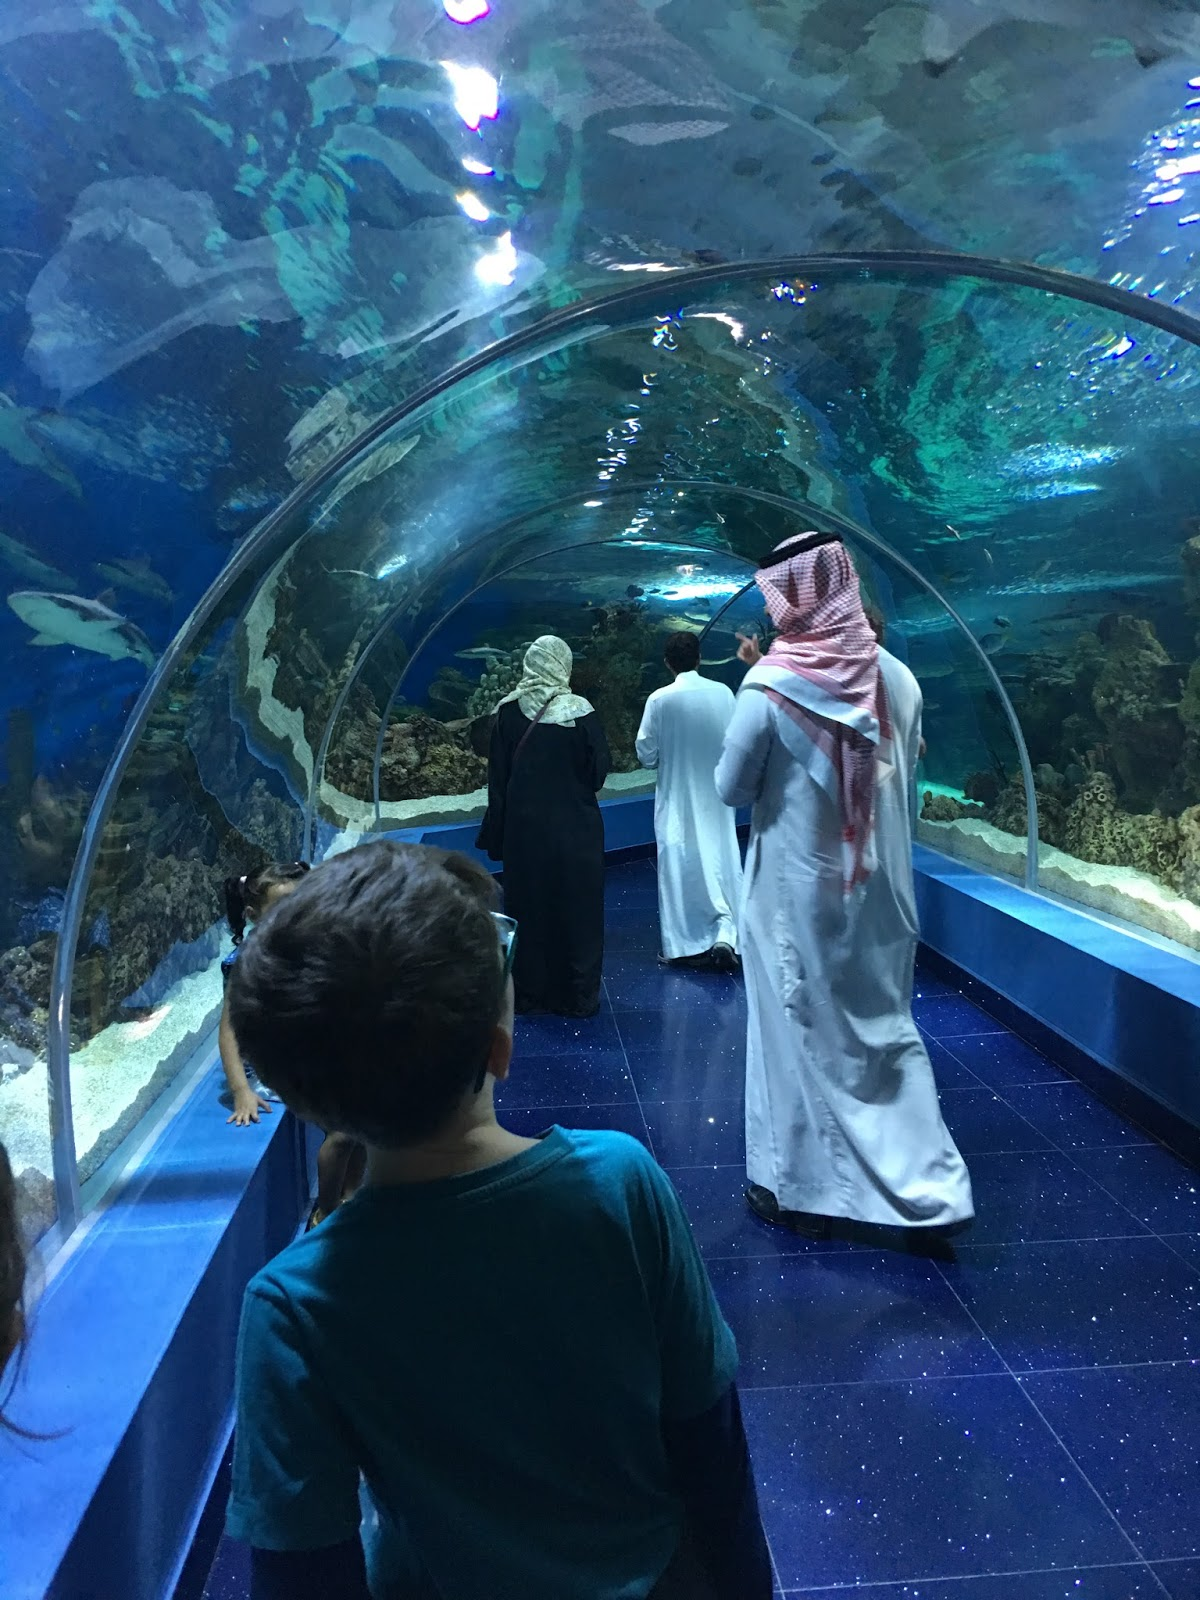 Fish aquarium jeddah - All The Favourites Are There Sharks Mostly Black Tips Turtles Parrot Fish Clown Fish Eels Seahorses And Jellyfish Fakieh Aquarium Jeddah